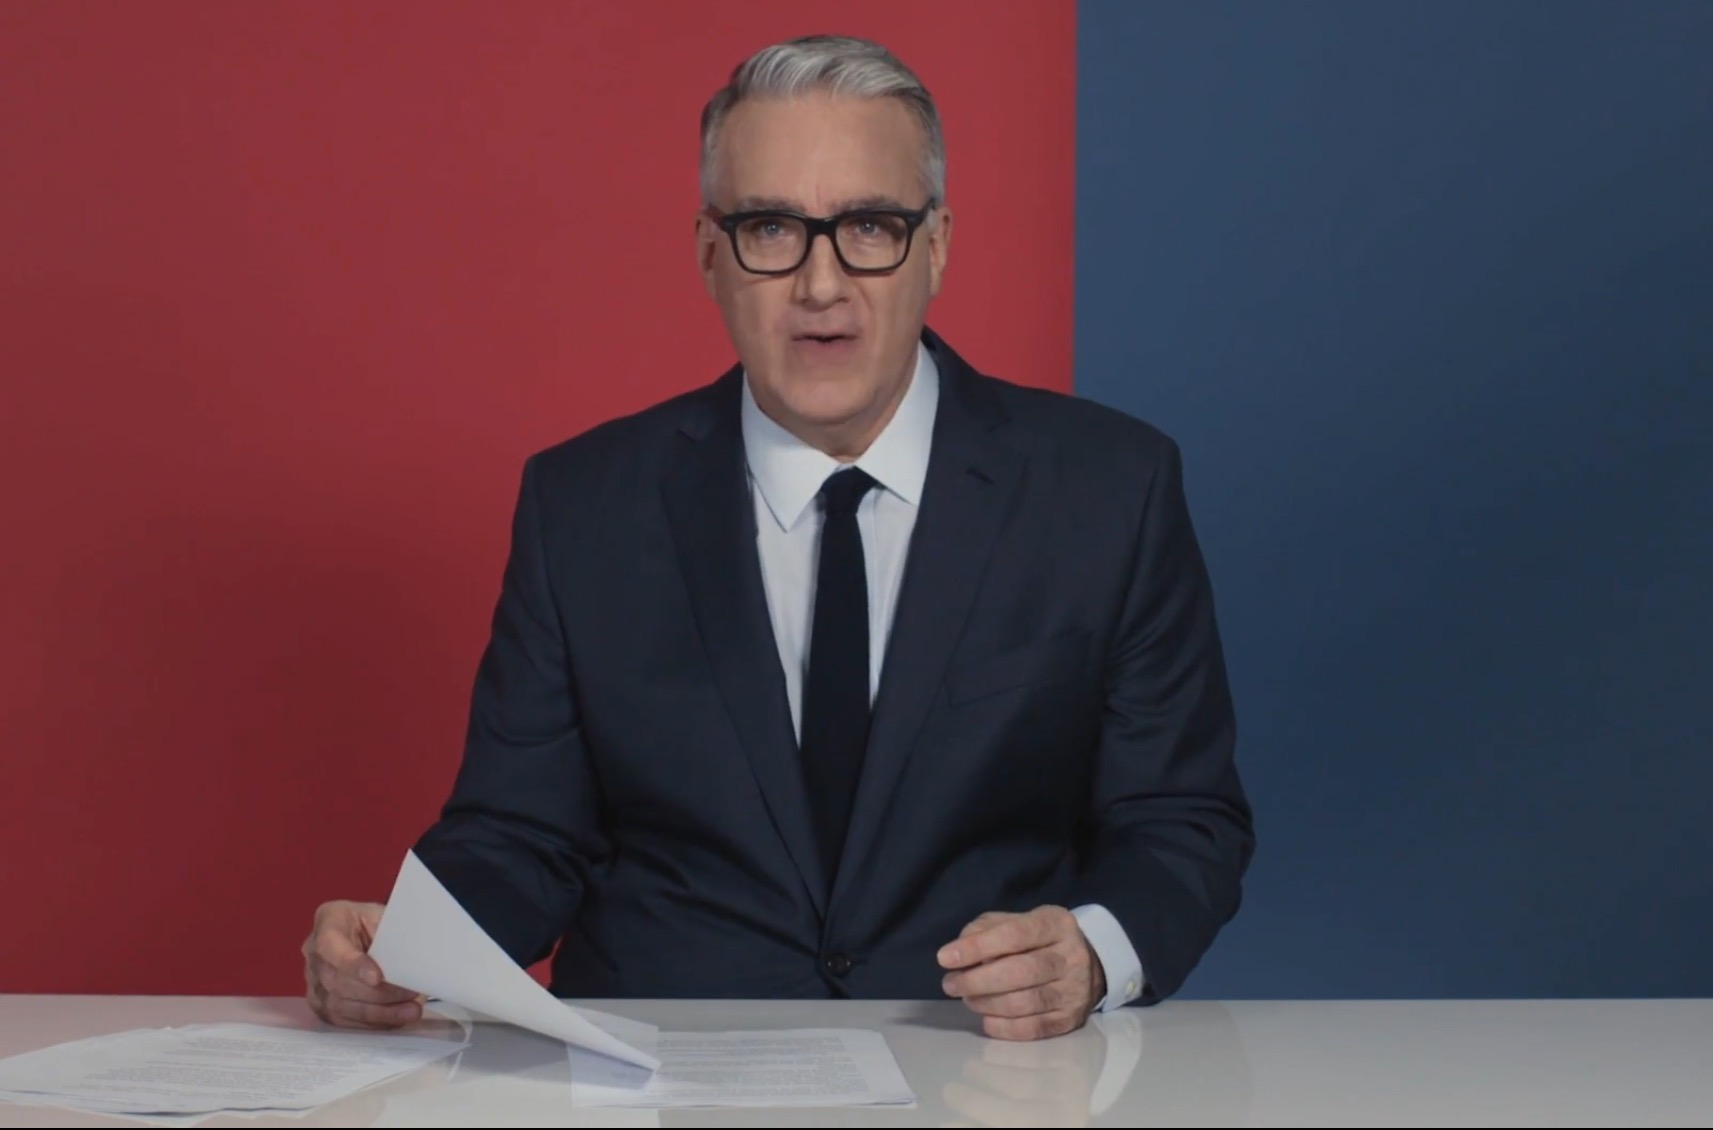 Keith Olbermann: Gutless Republicans Face Political Apocalypse For Enabling Trump